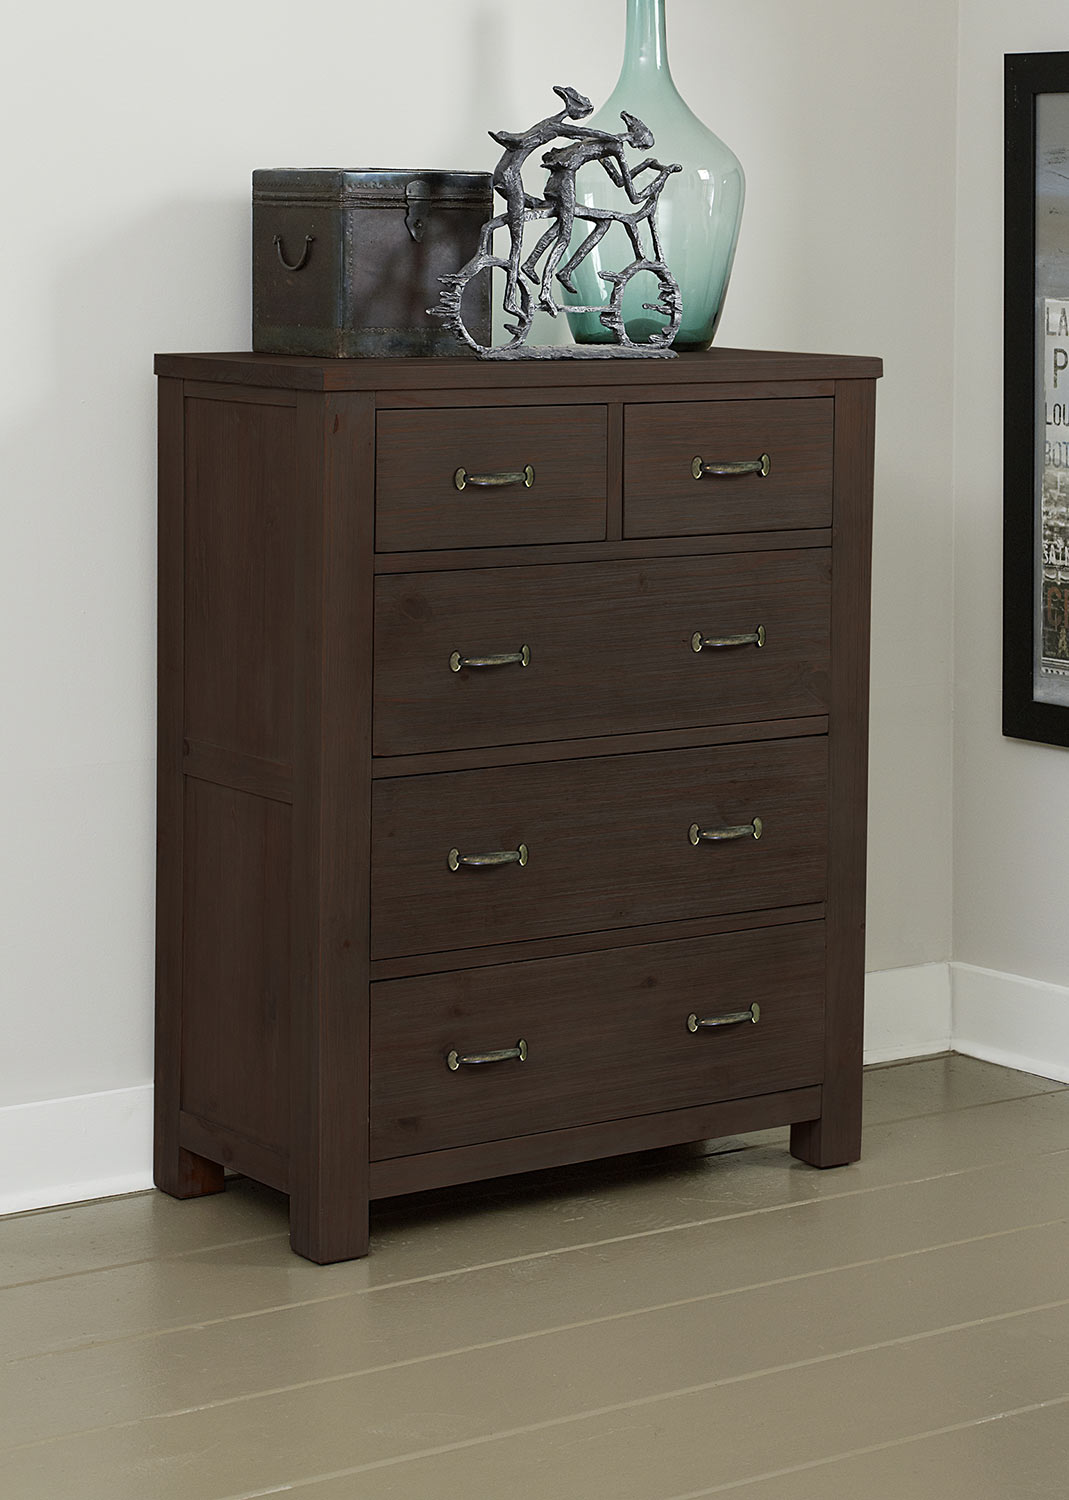 NE Kids Highlands 5 Drawer Chest - Espresso